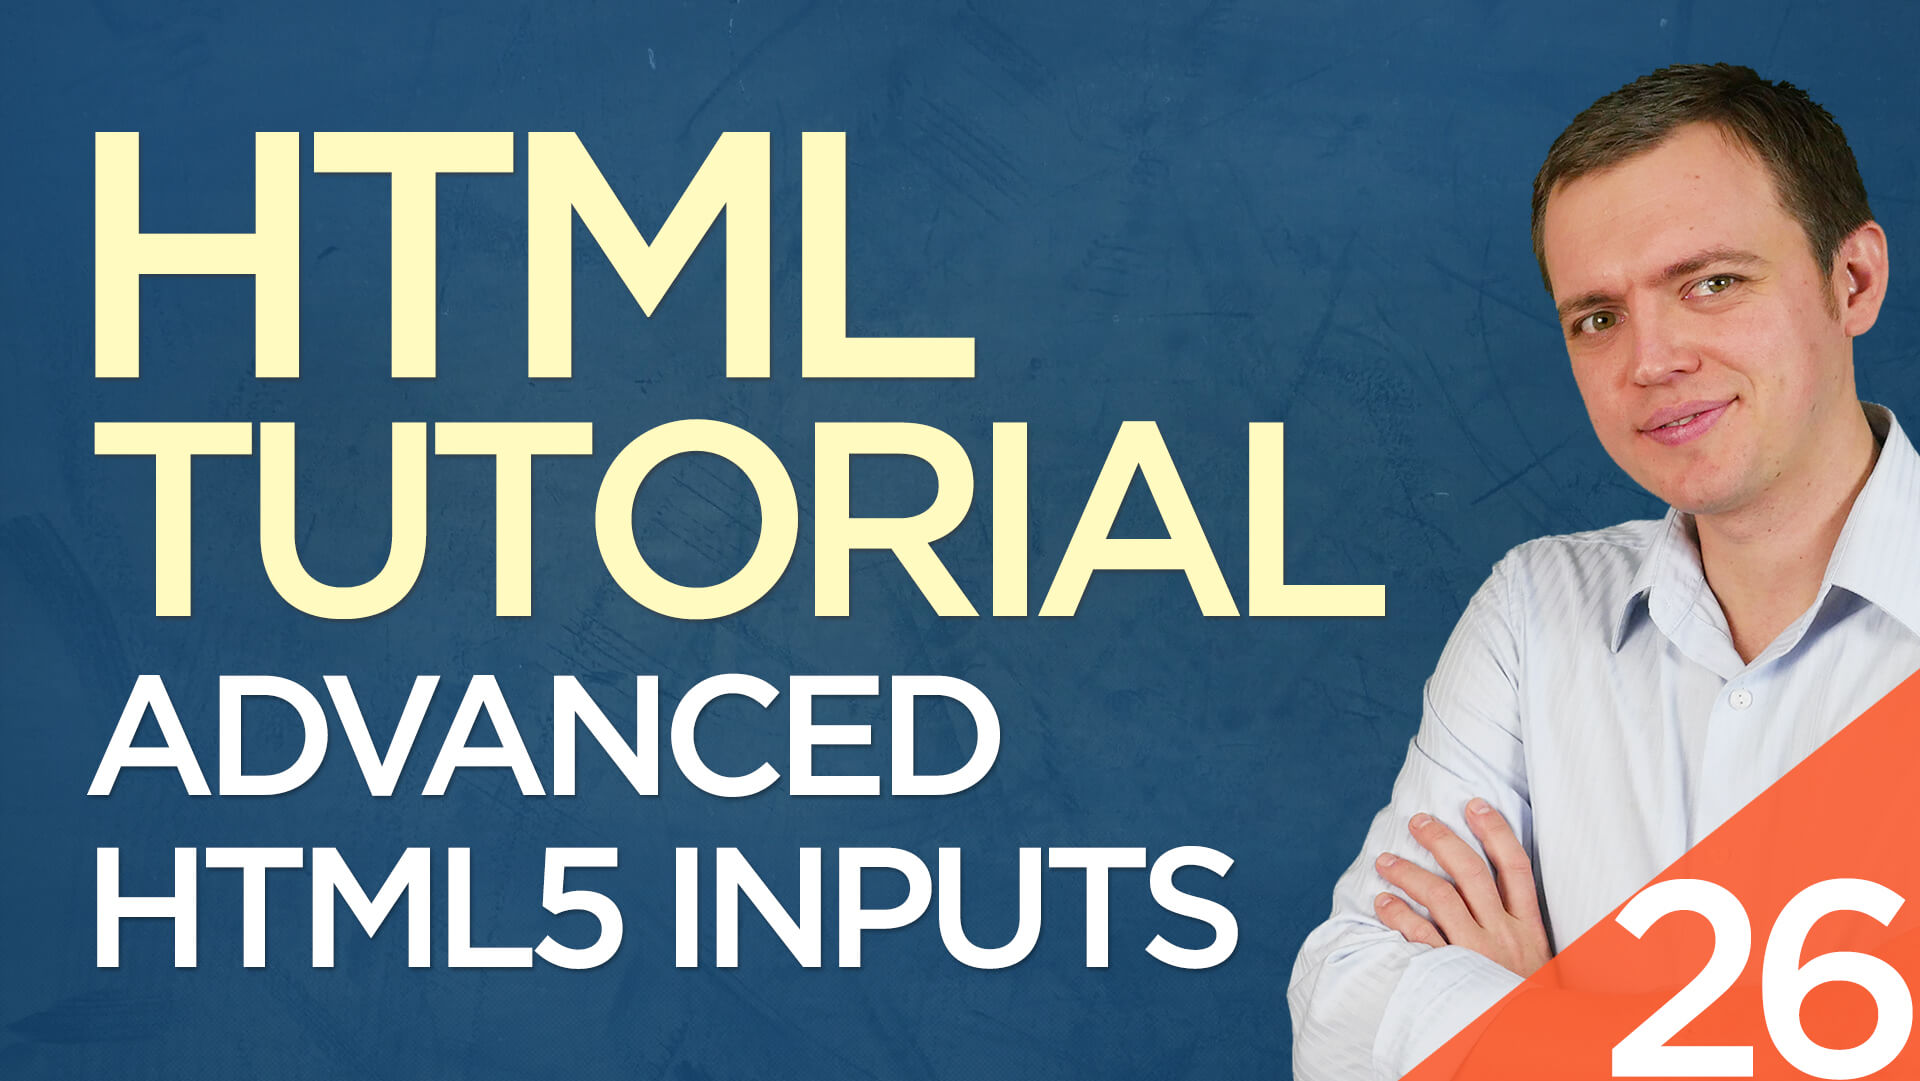 HTML Tutorial for Beginners: 26 Advanced Input Fields for HTML5 Forms